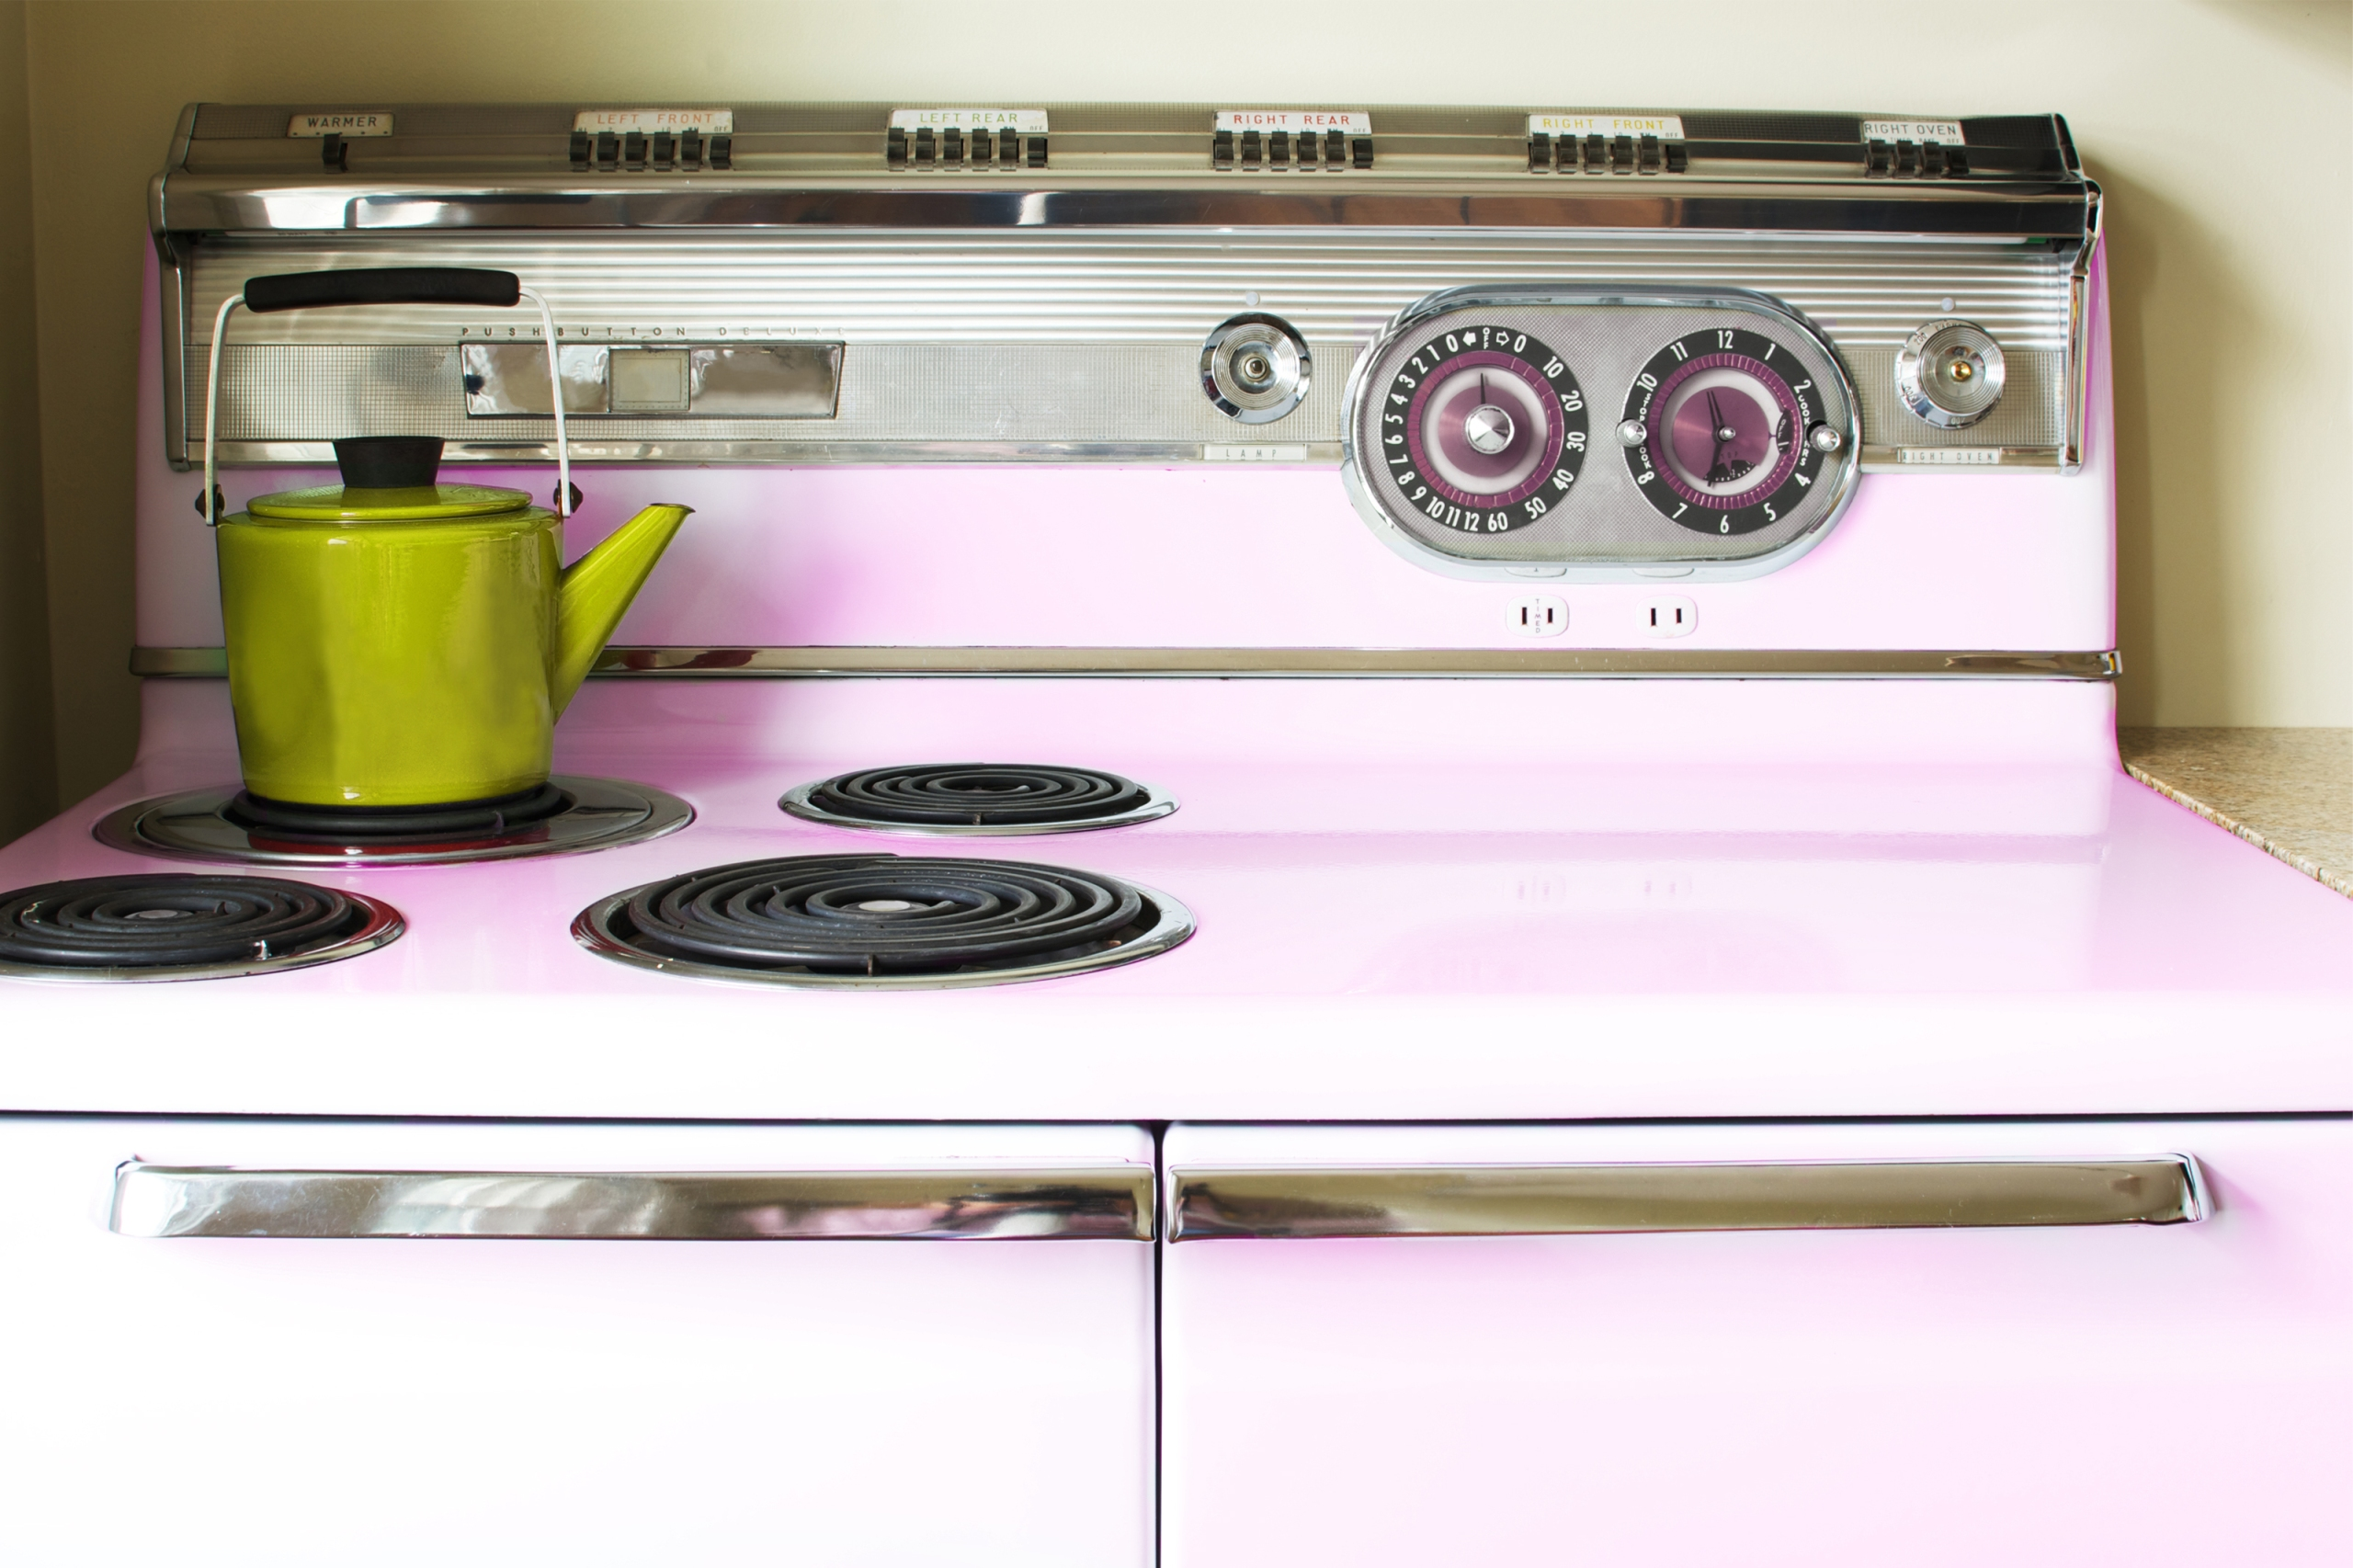 Vintage pink appliance in a home kitchen